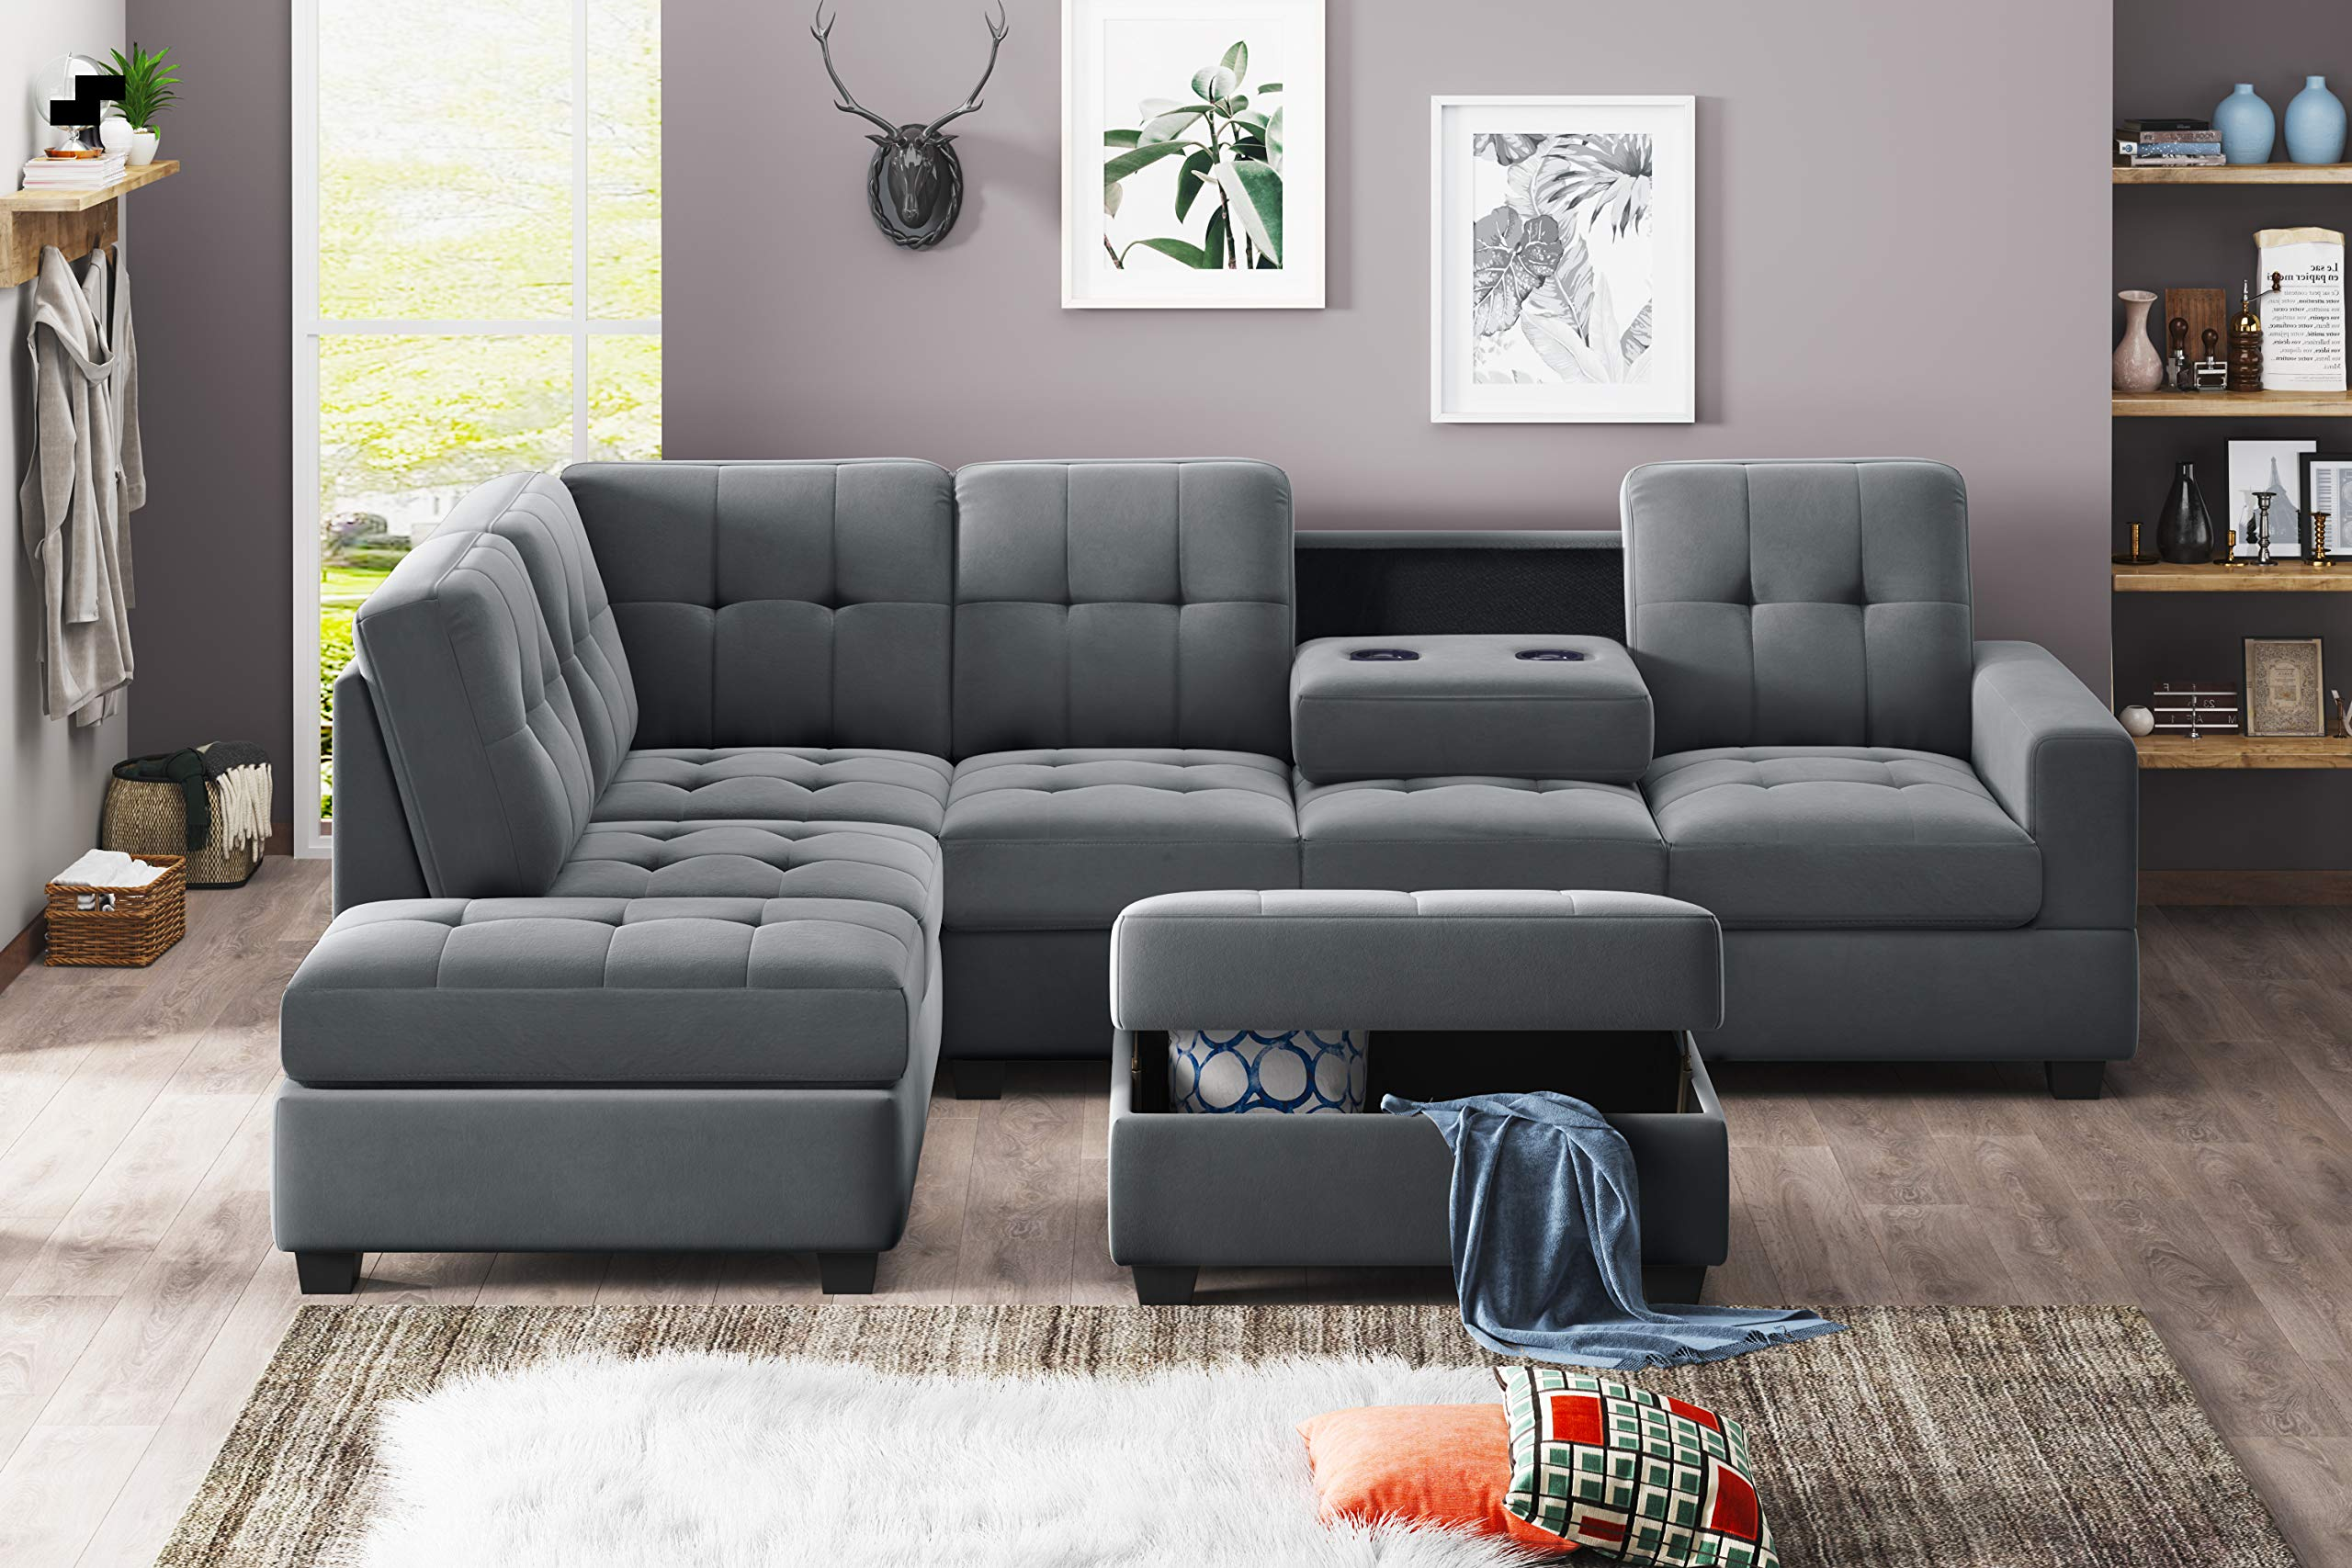 UNIROI Modern Microfiber Sectional, L-Shaped Couch Sofa with Reversible Chaise Lounge Storage Ottoman and Cup Holders Furn...